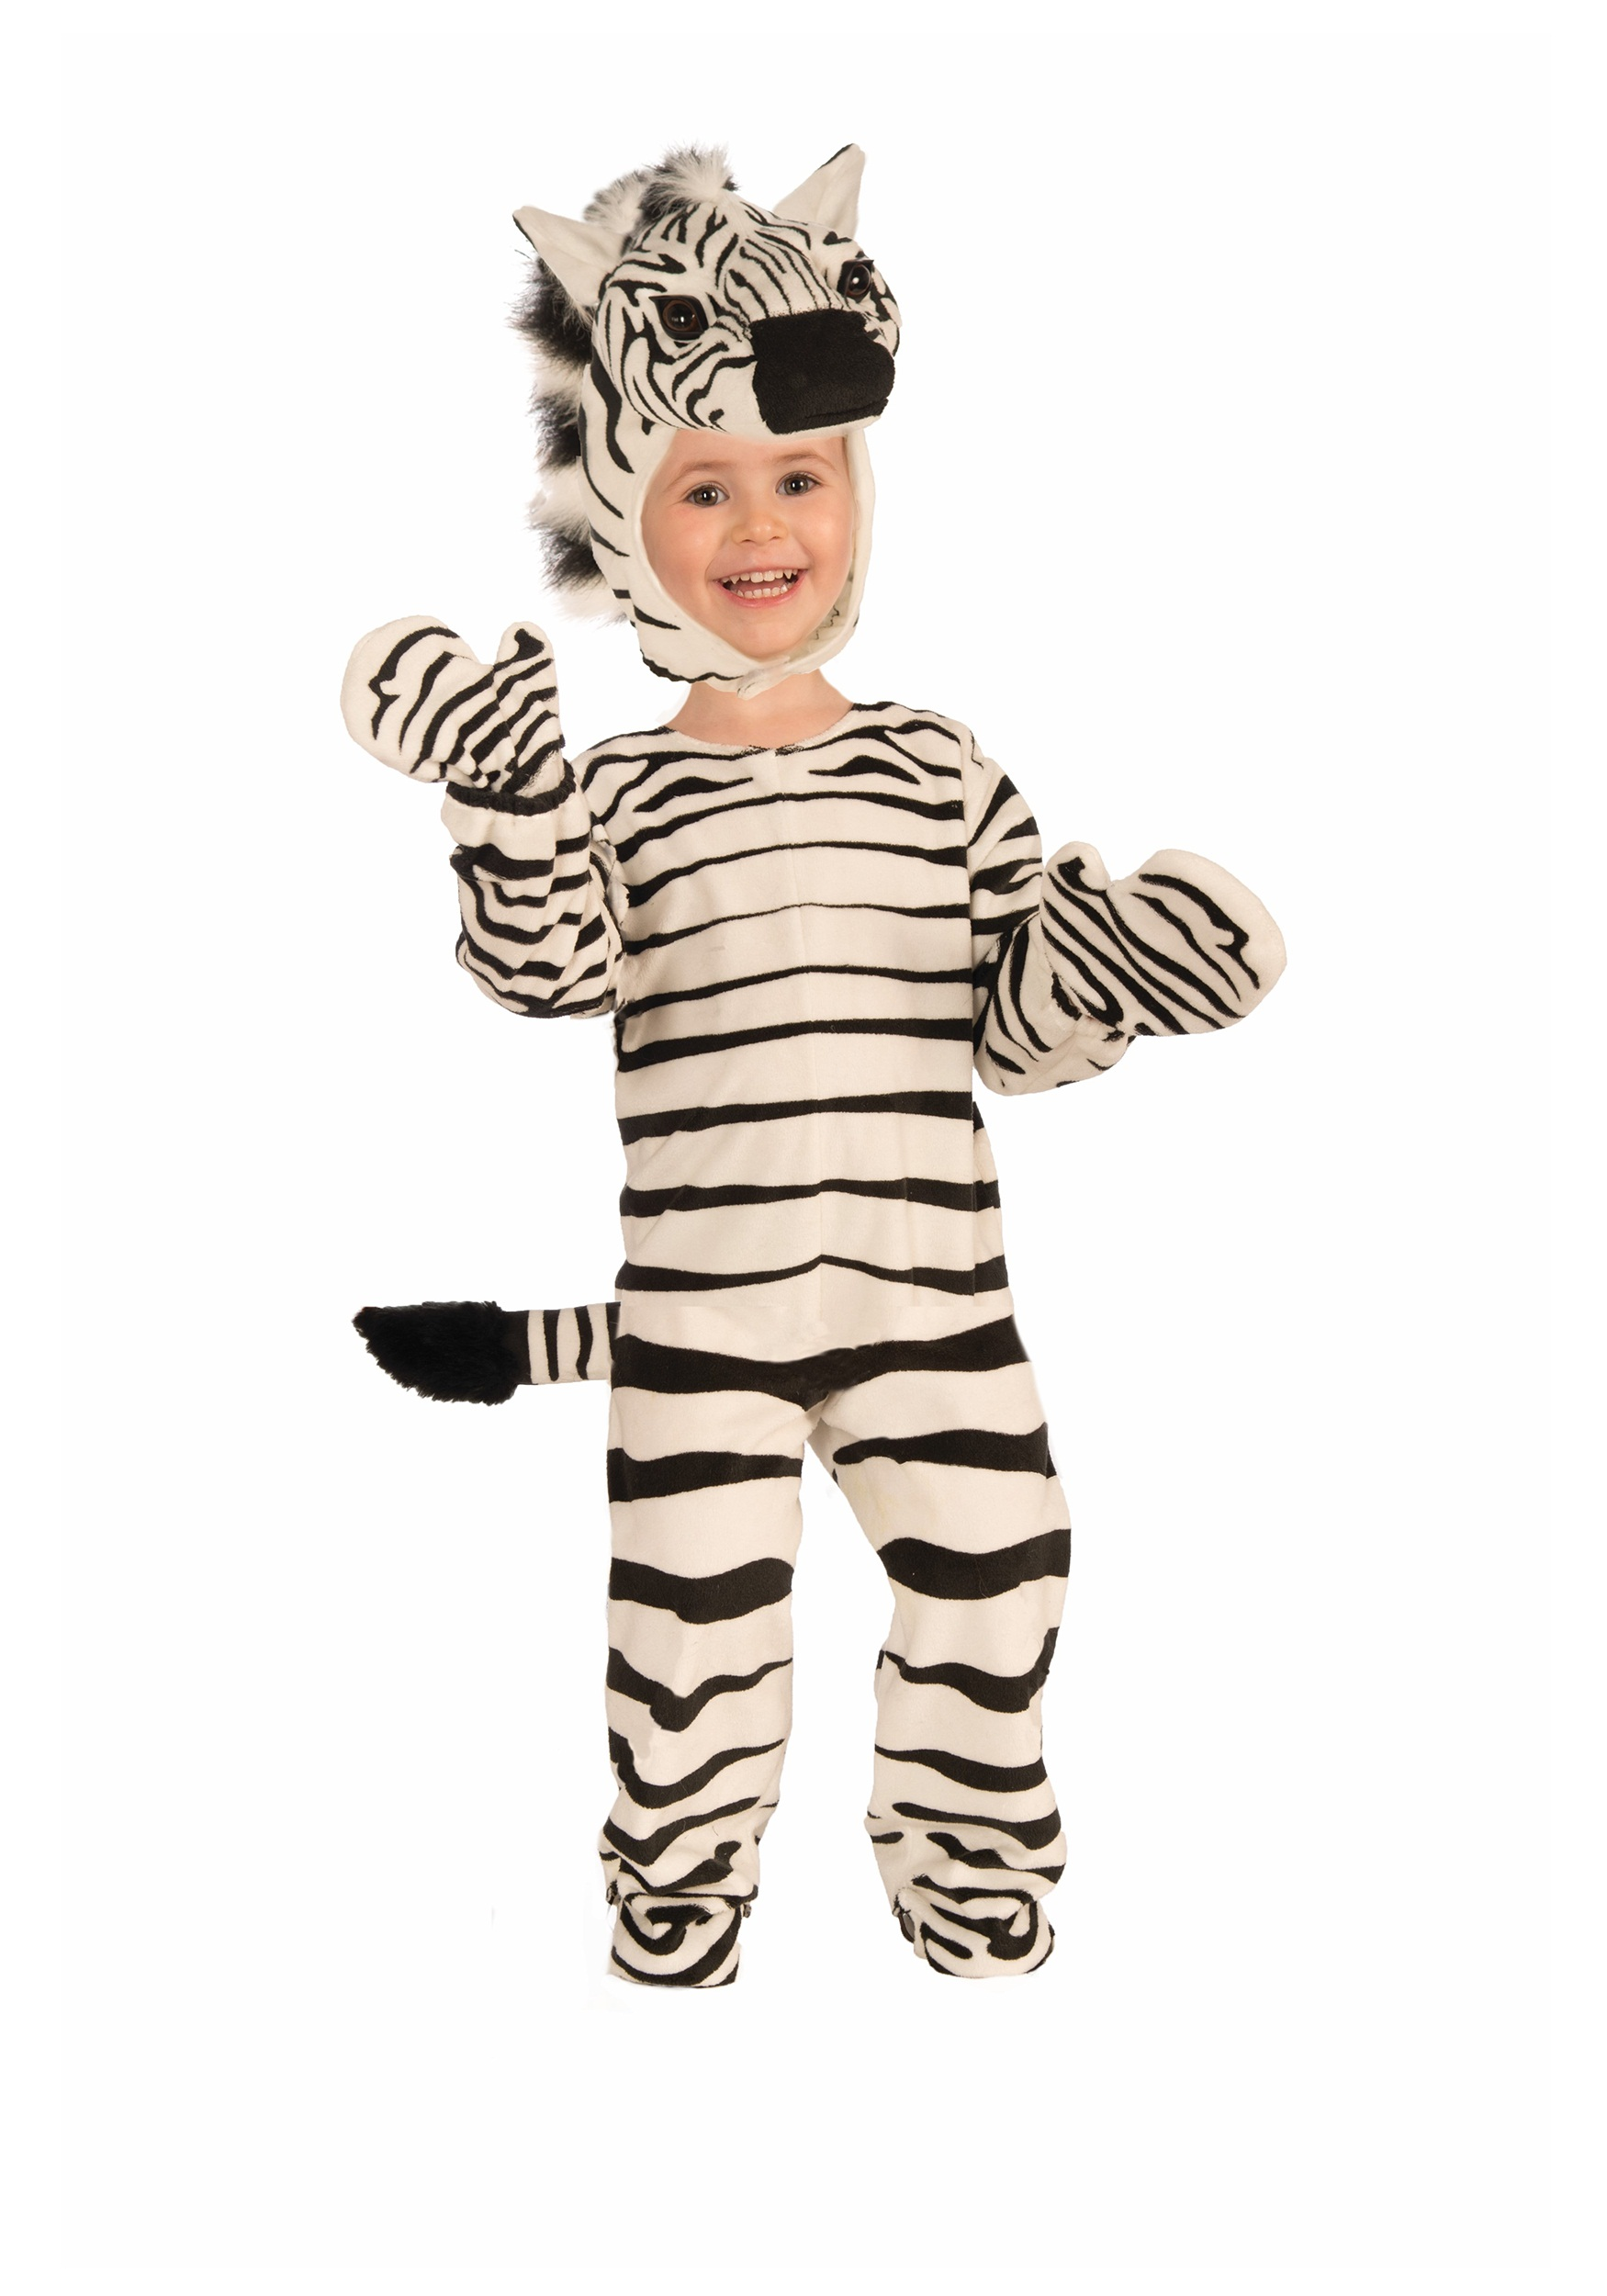 Find great deals on eBay for Zebra Costume in Girls Theater and Reenactment Costumes. Shop with confidence.